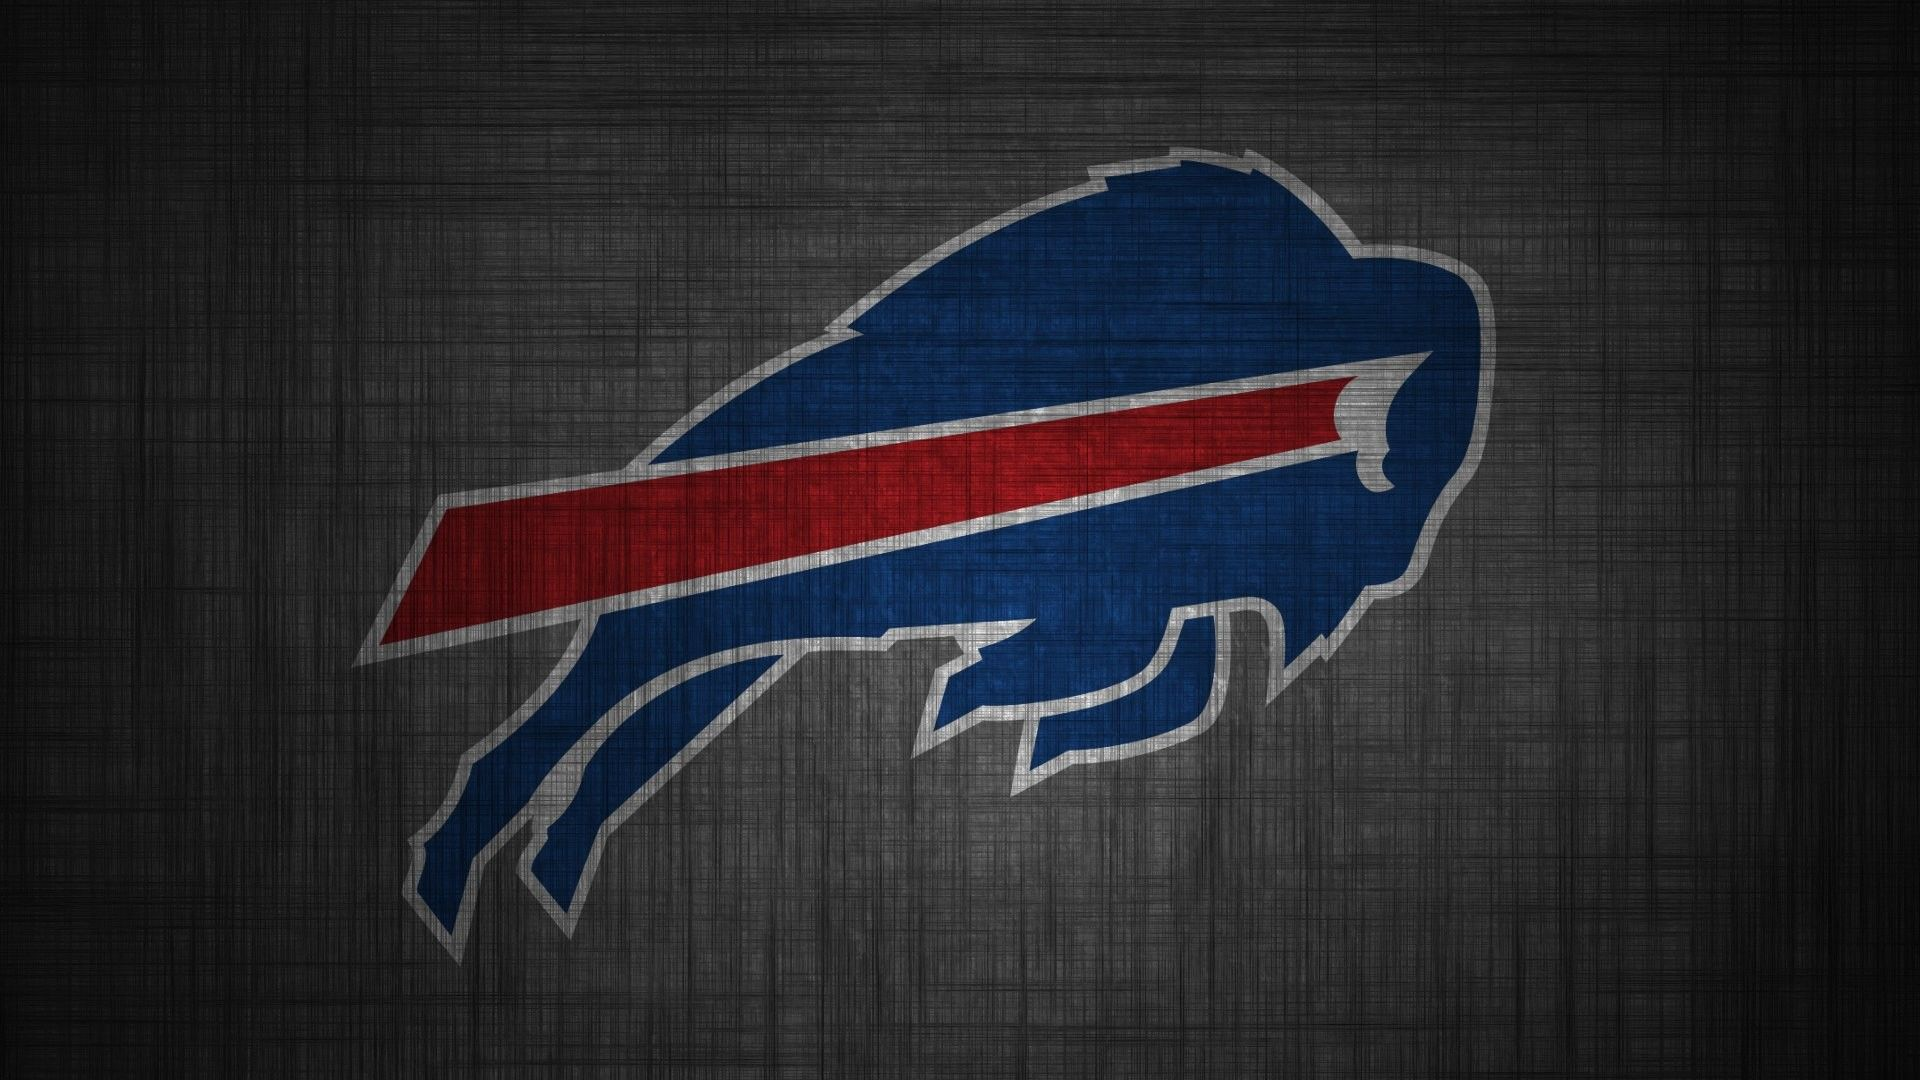 Buffalo Bills Mac Backgrounds Wallpapers Mac backgrounds 1920x1080